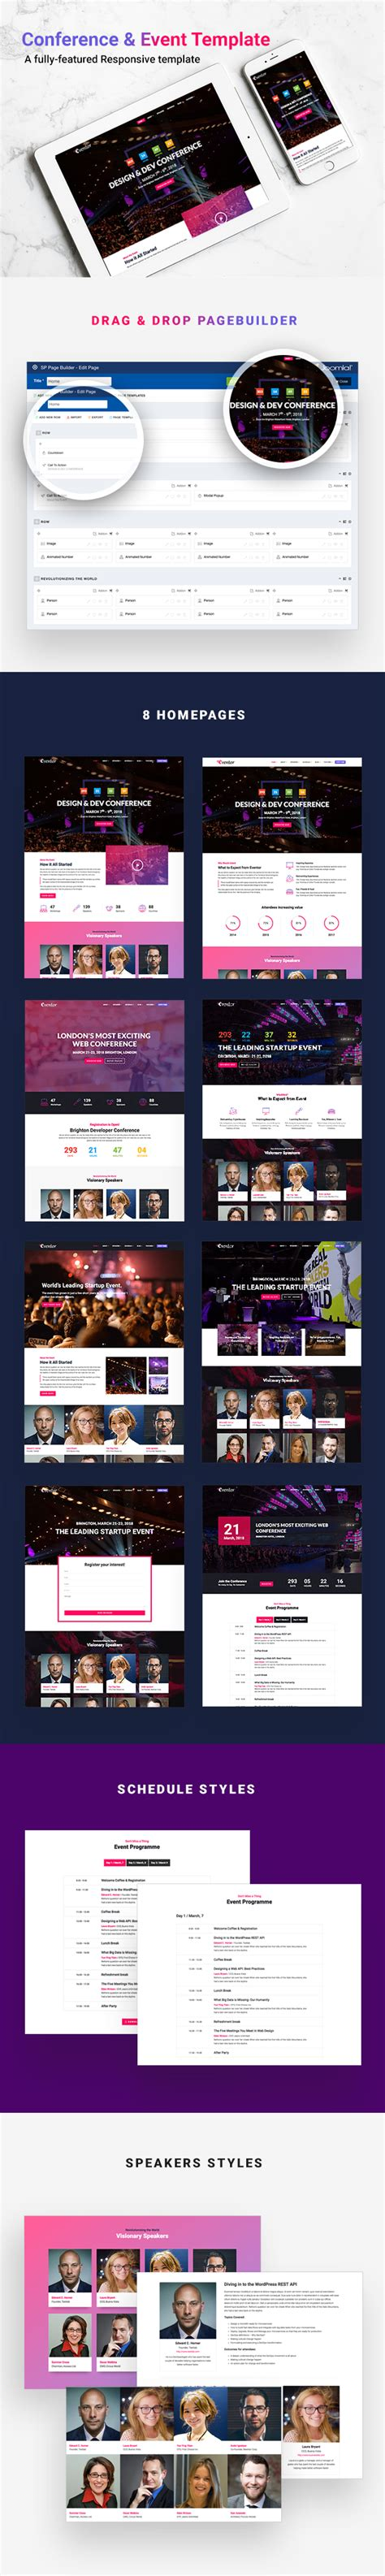 eventor conference event joomla template by tripples